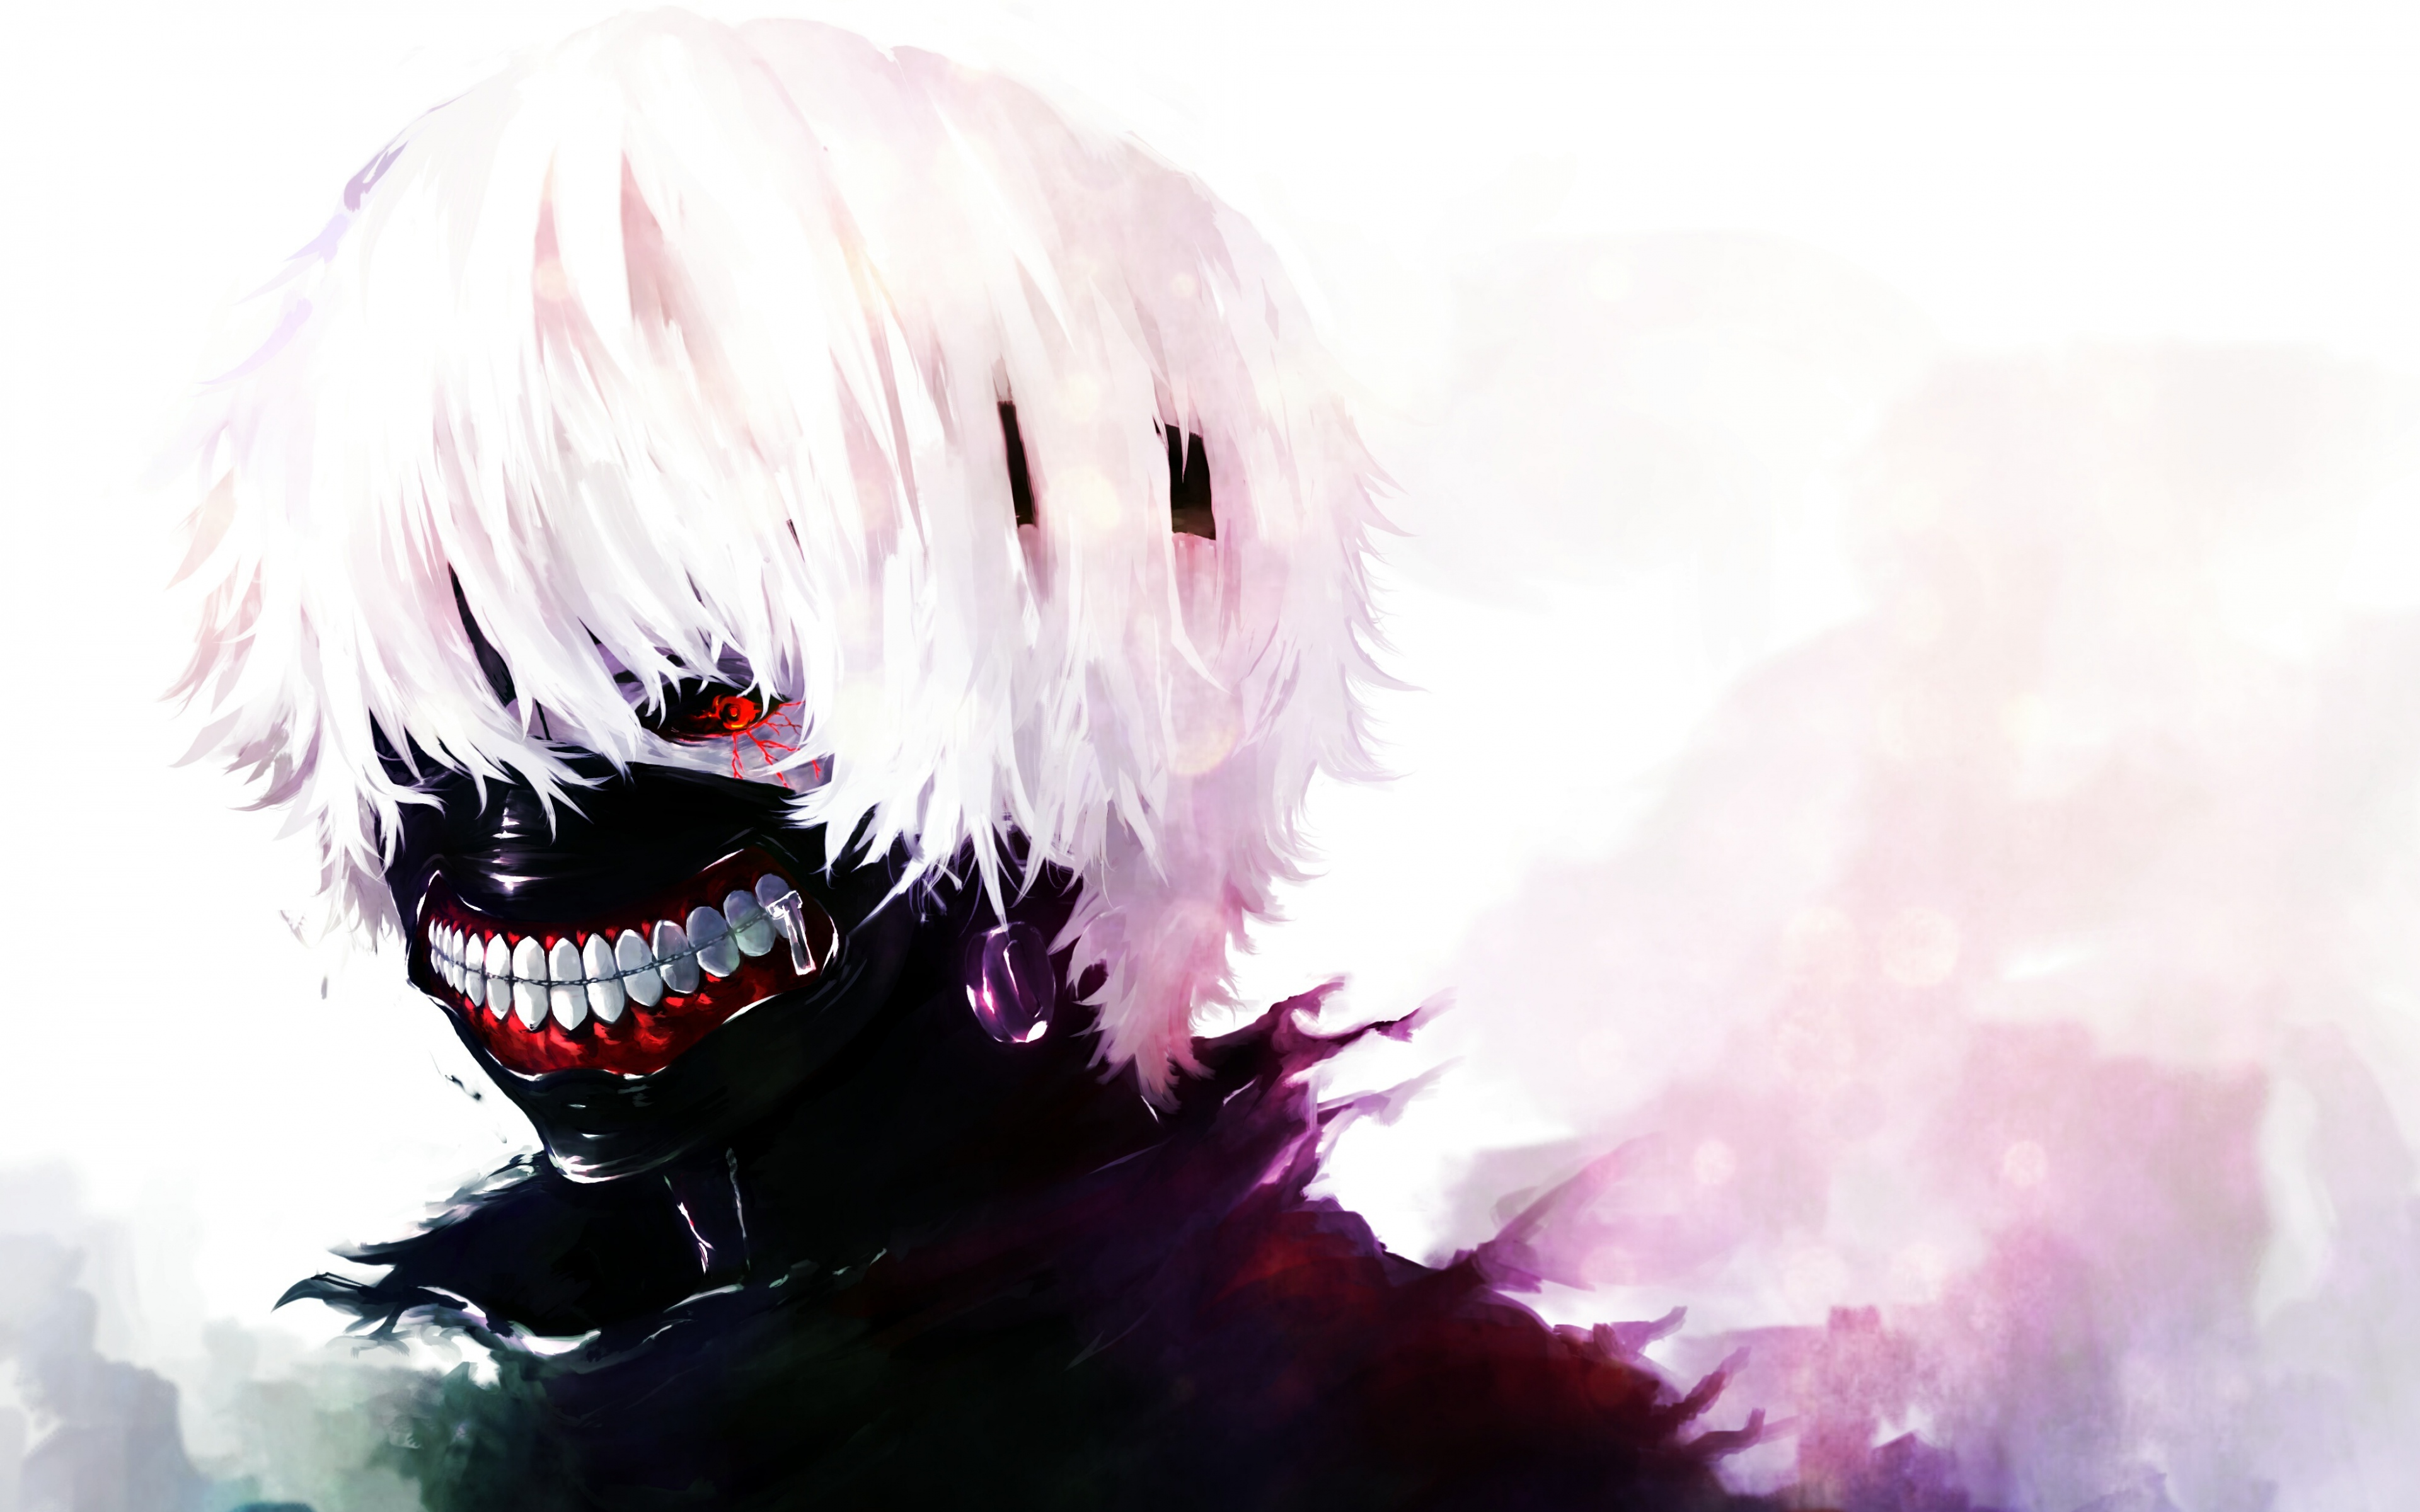 Epic Anime Backgrounds Download 3840x2400